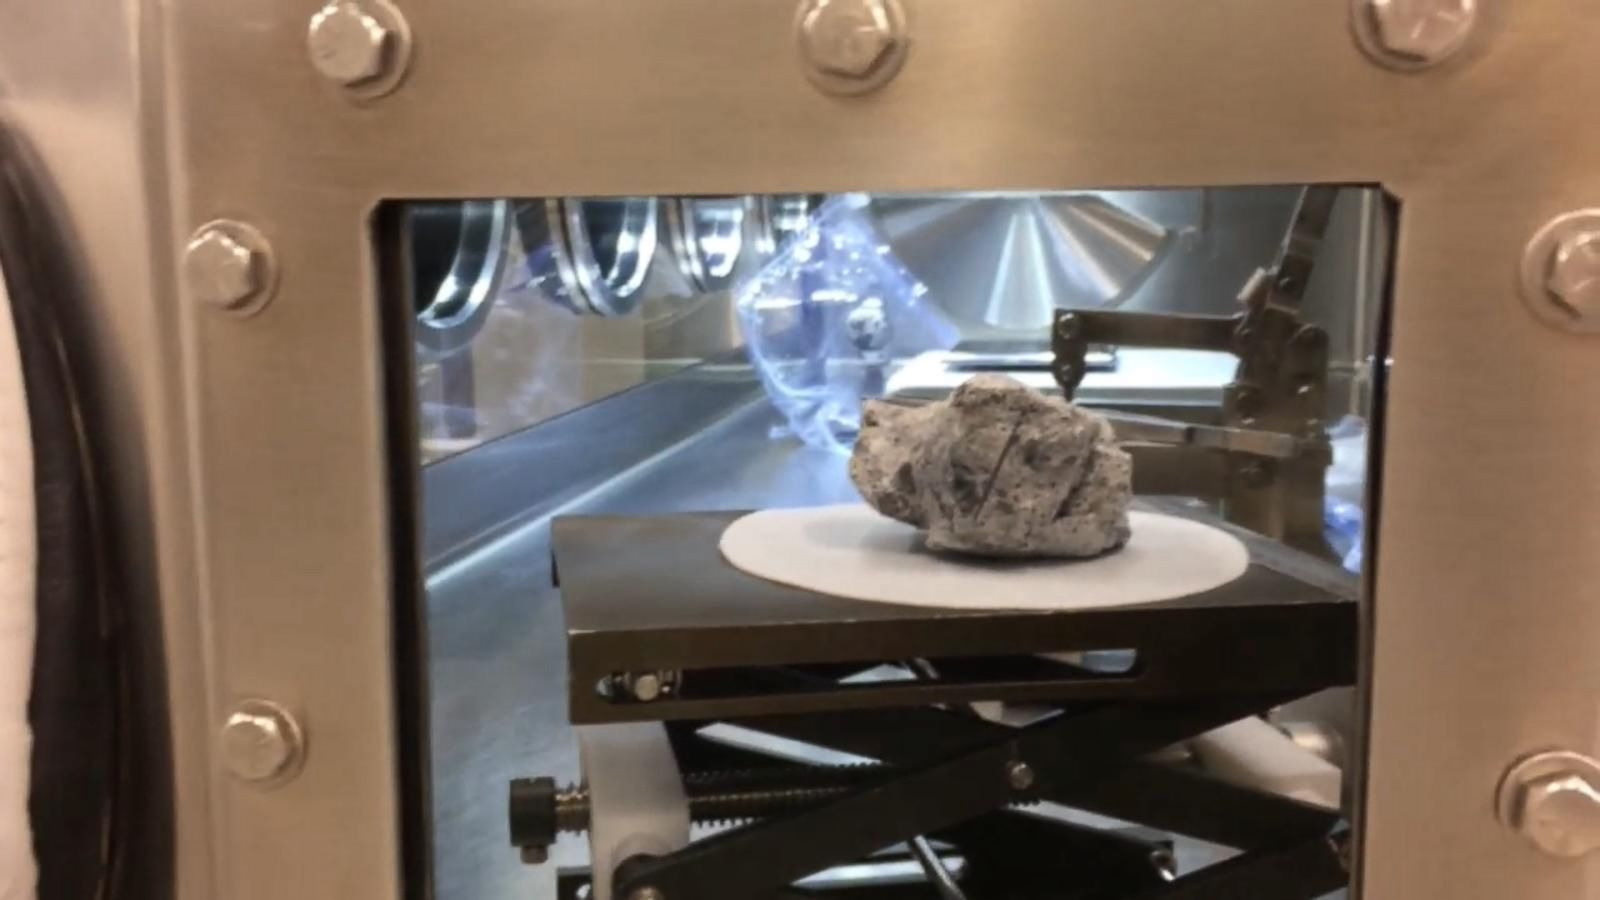 VIDEO: Moon Rocks and Asteroids at NASA's Johnson Space Center